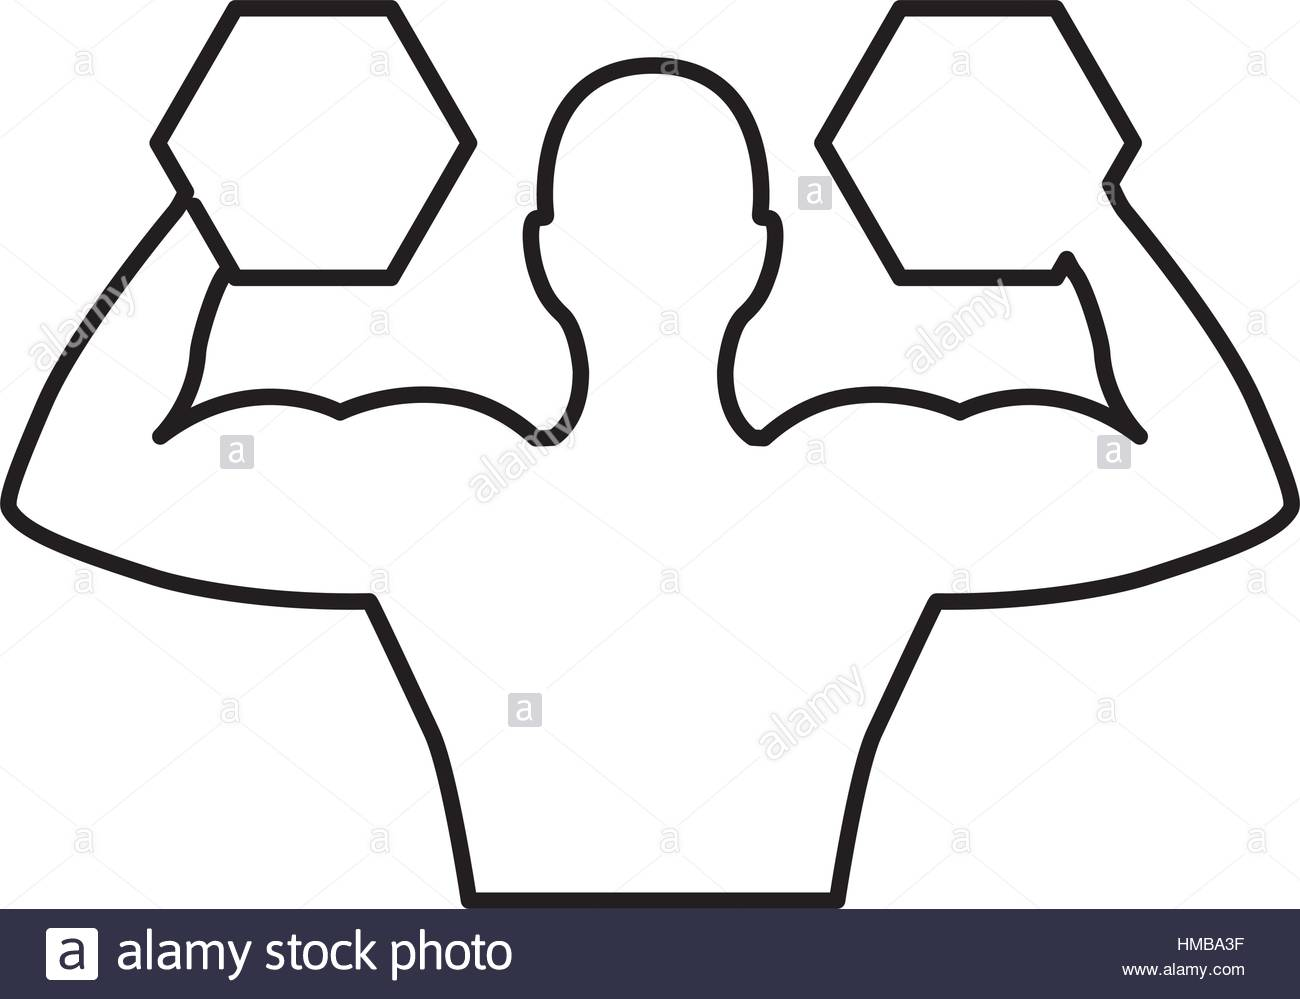 1300x999 Weight Lifting Athlete Silhouette Vector Illustration Design Stock